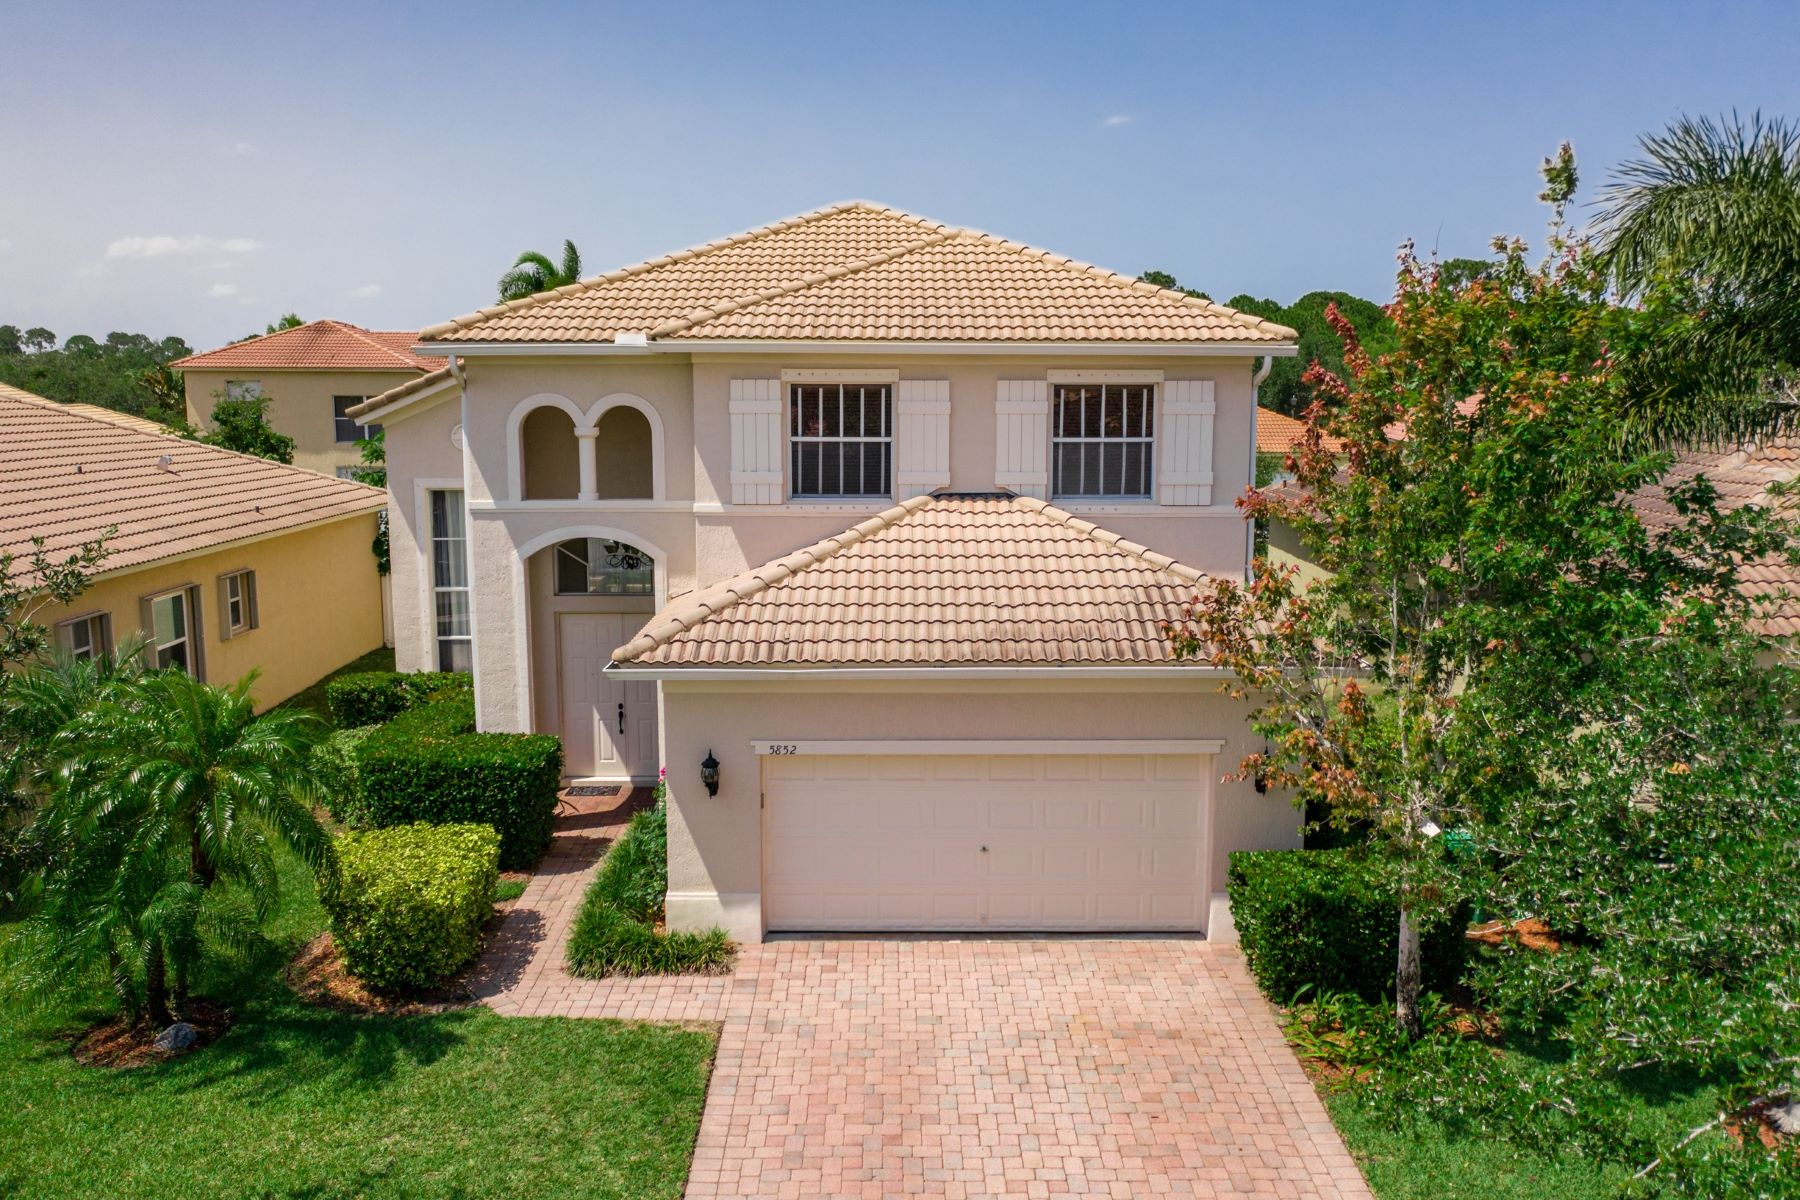 Single Family Homes for Sale at 5852 Sunberry Circle, Fort Pierce, FL 5852 Sunberry Circle Fort Pierce, Florida 34951 United States